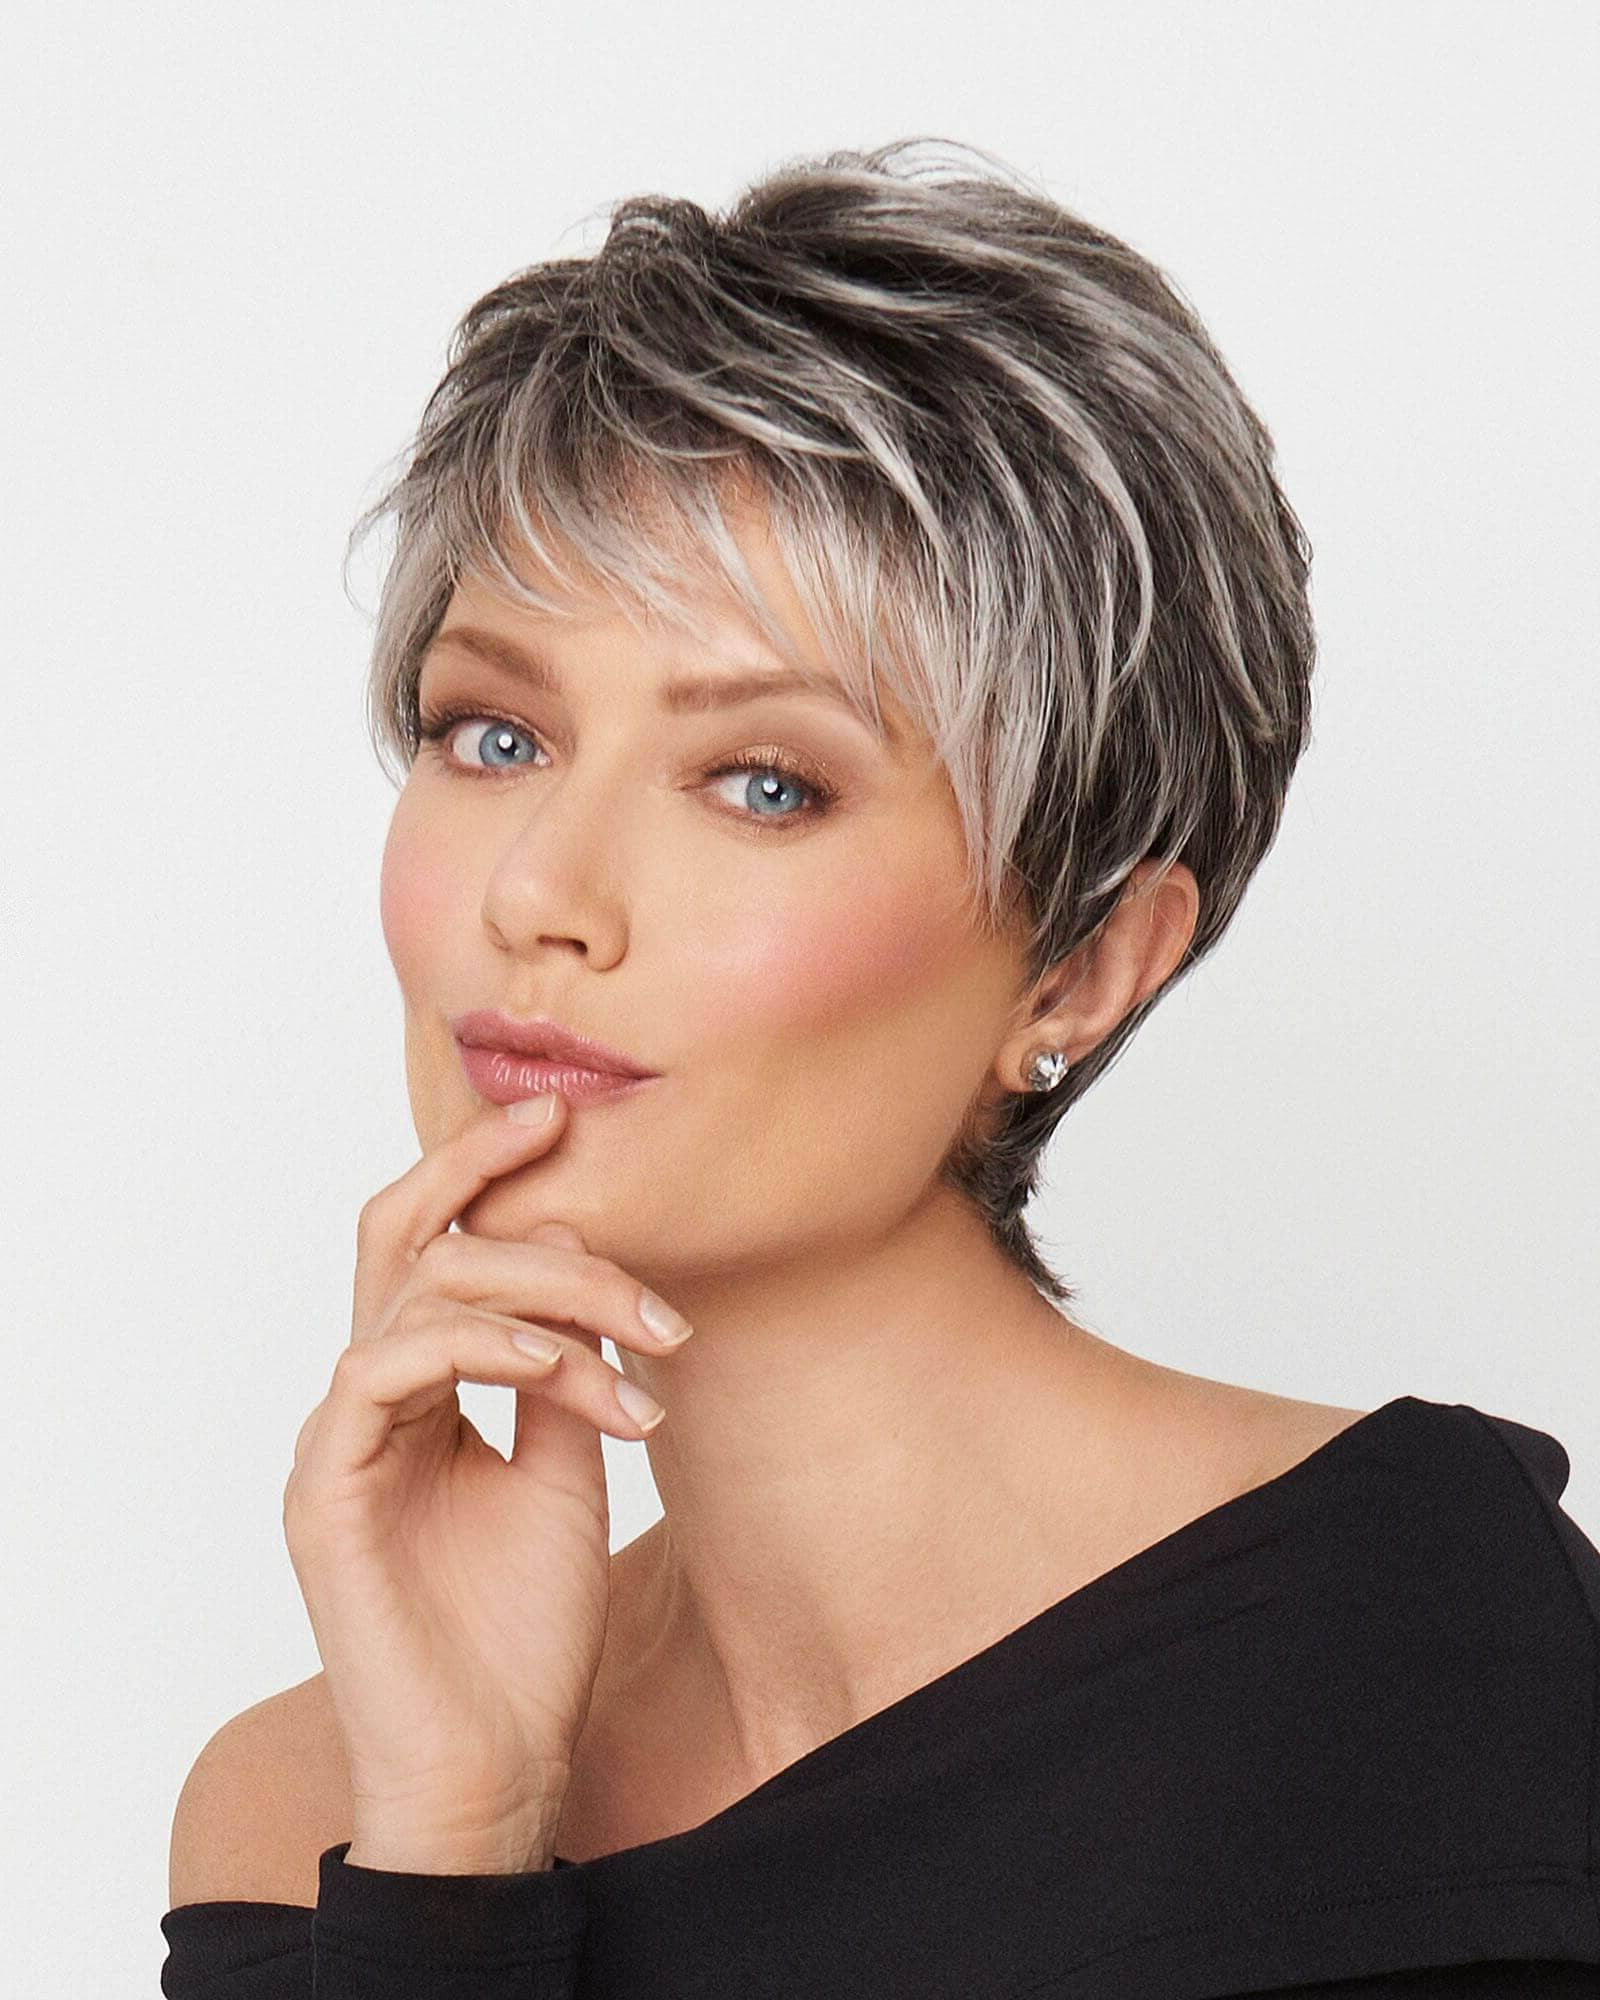 50 Pixie Haircuts You'll See Trending In 2019 Inside Pastel Pixie Haircuts With Curly Bangs (View 12 of 20)